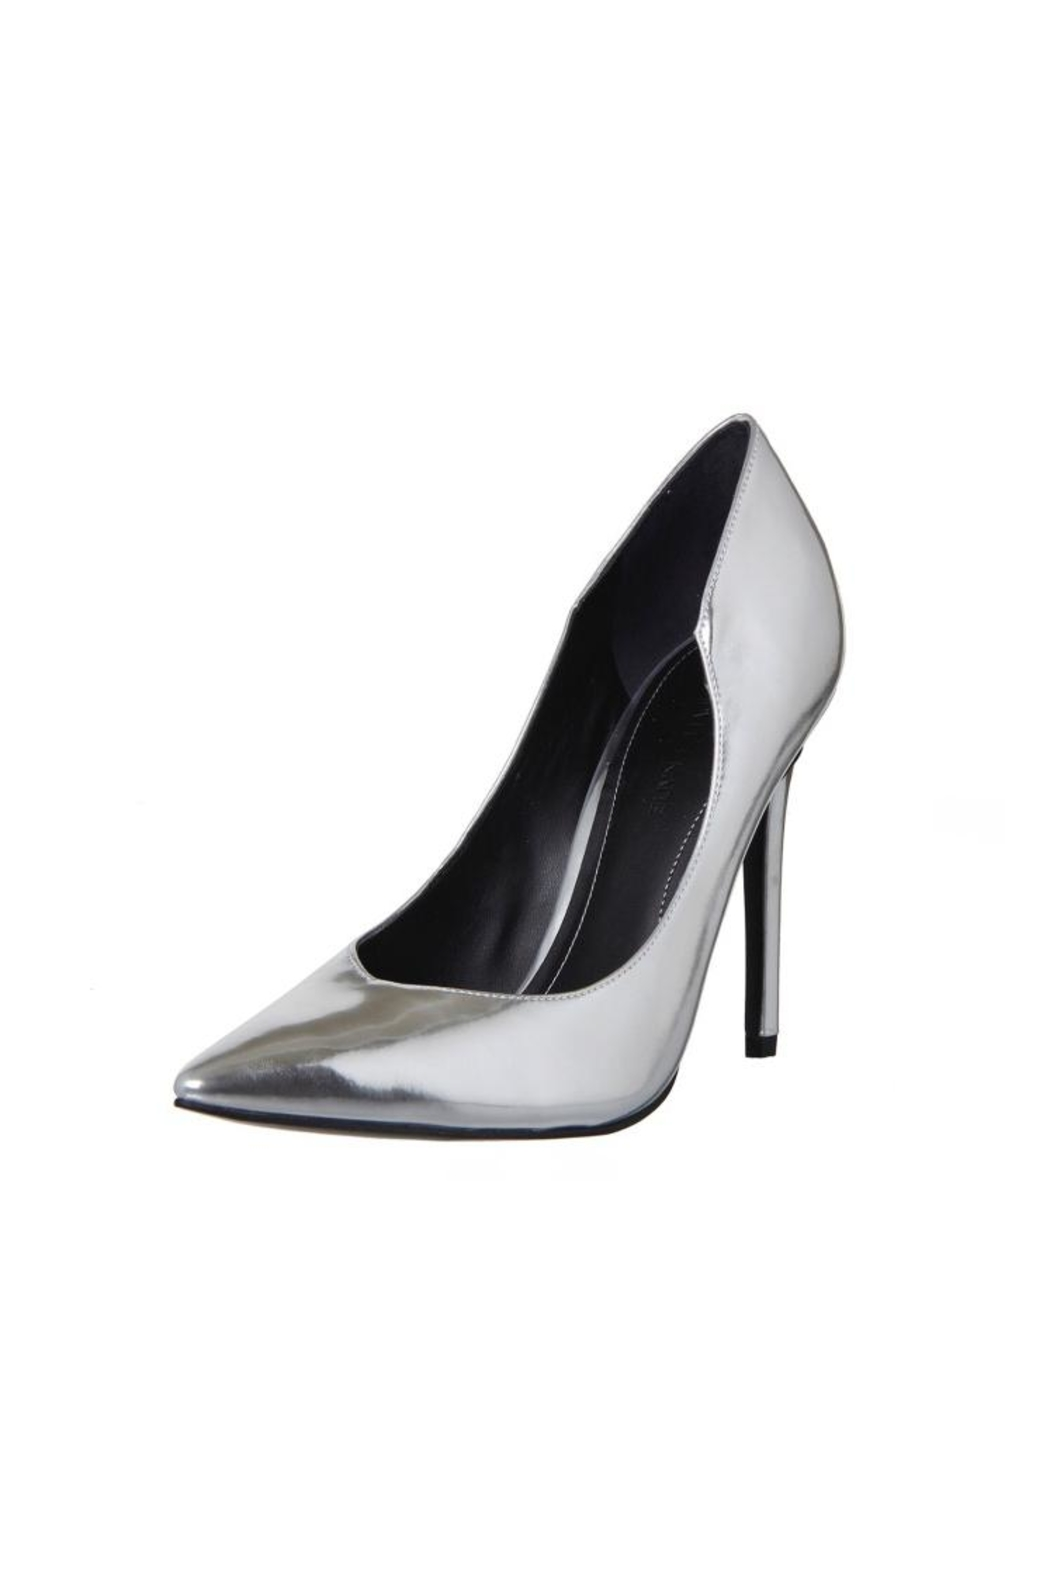 Kendall + Kylie Abi Metallic Heels - Front Cropped Image